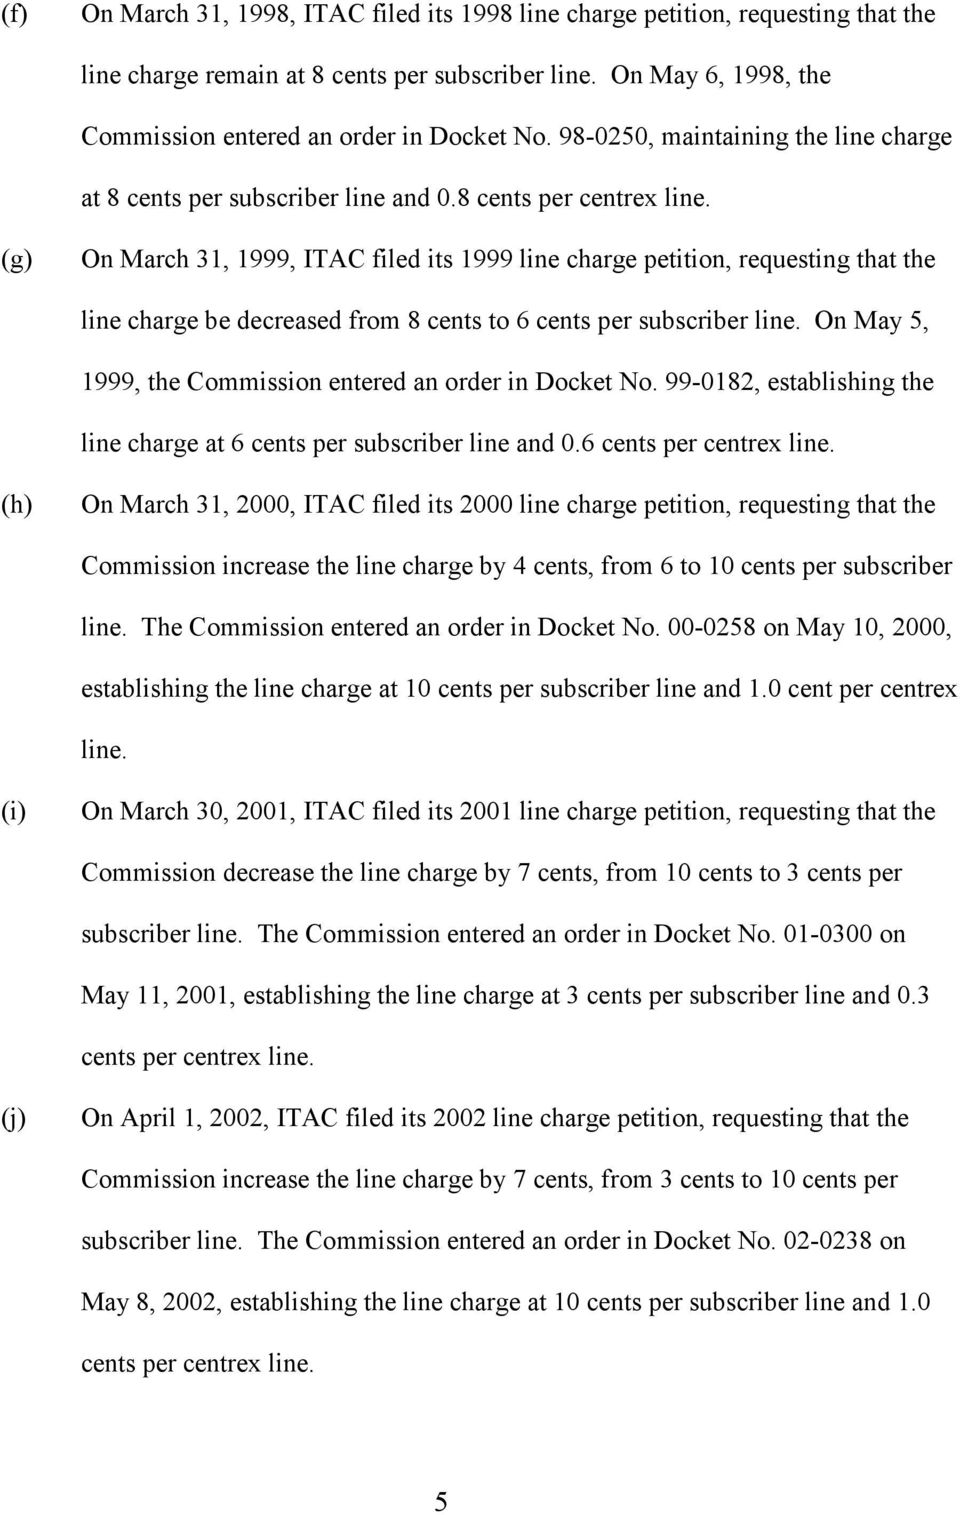 (g) On March 31, 1999, ITAC filed its 1999 line charge petition, requesting that the line charge be decreased from 8 cents to 6 cents per subscriber line.